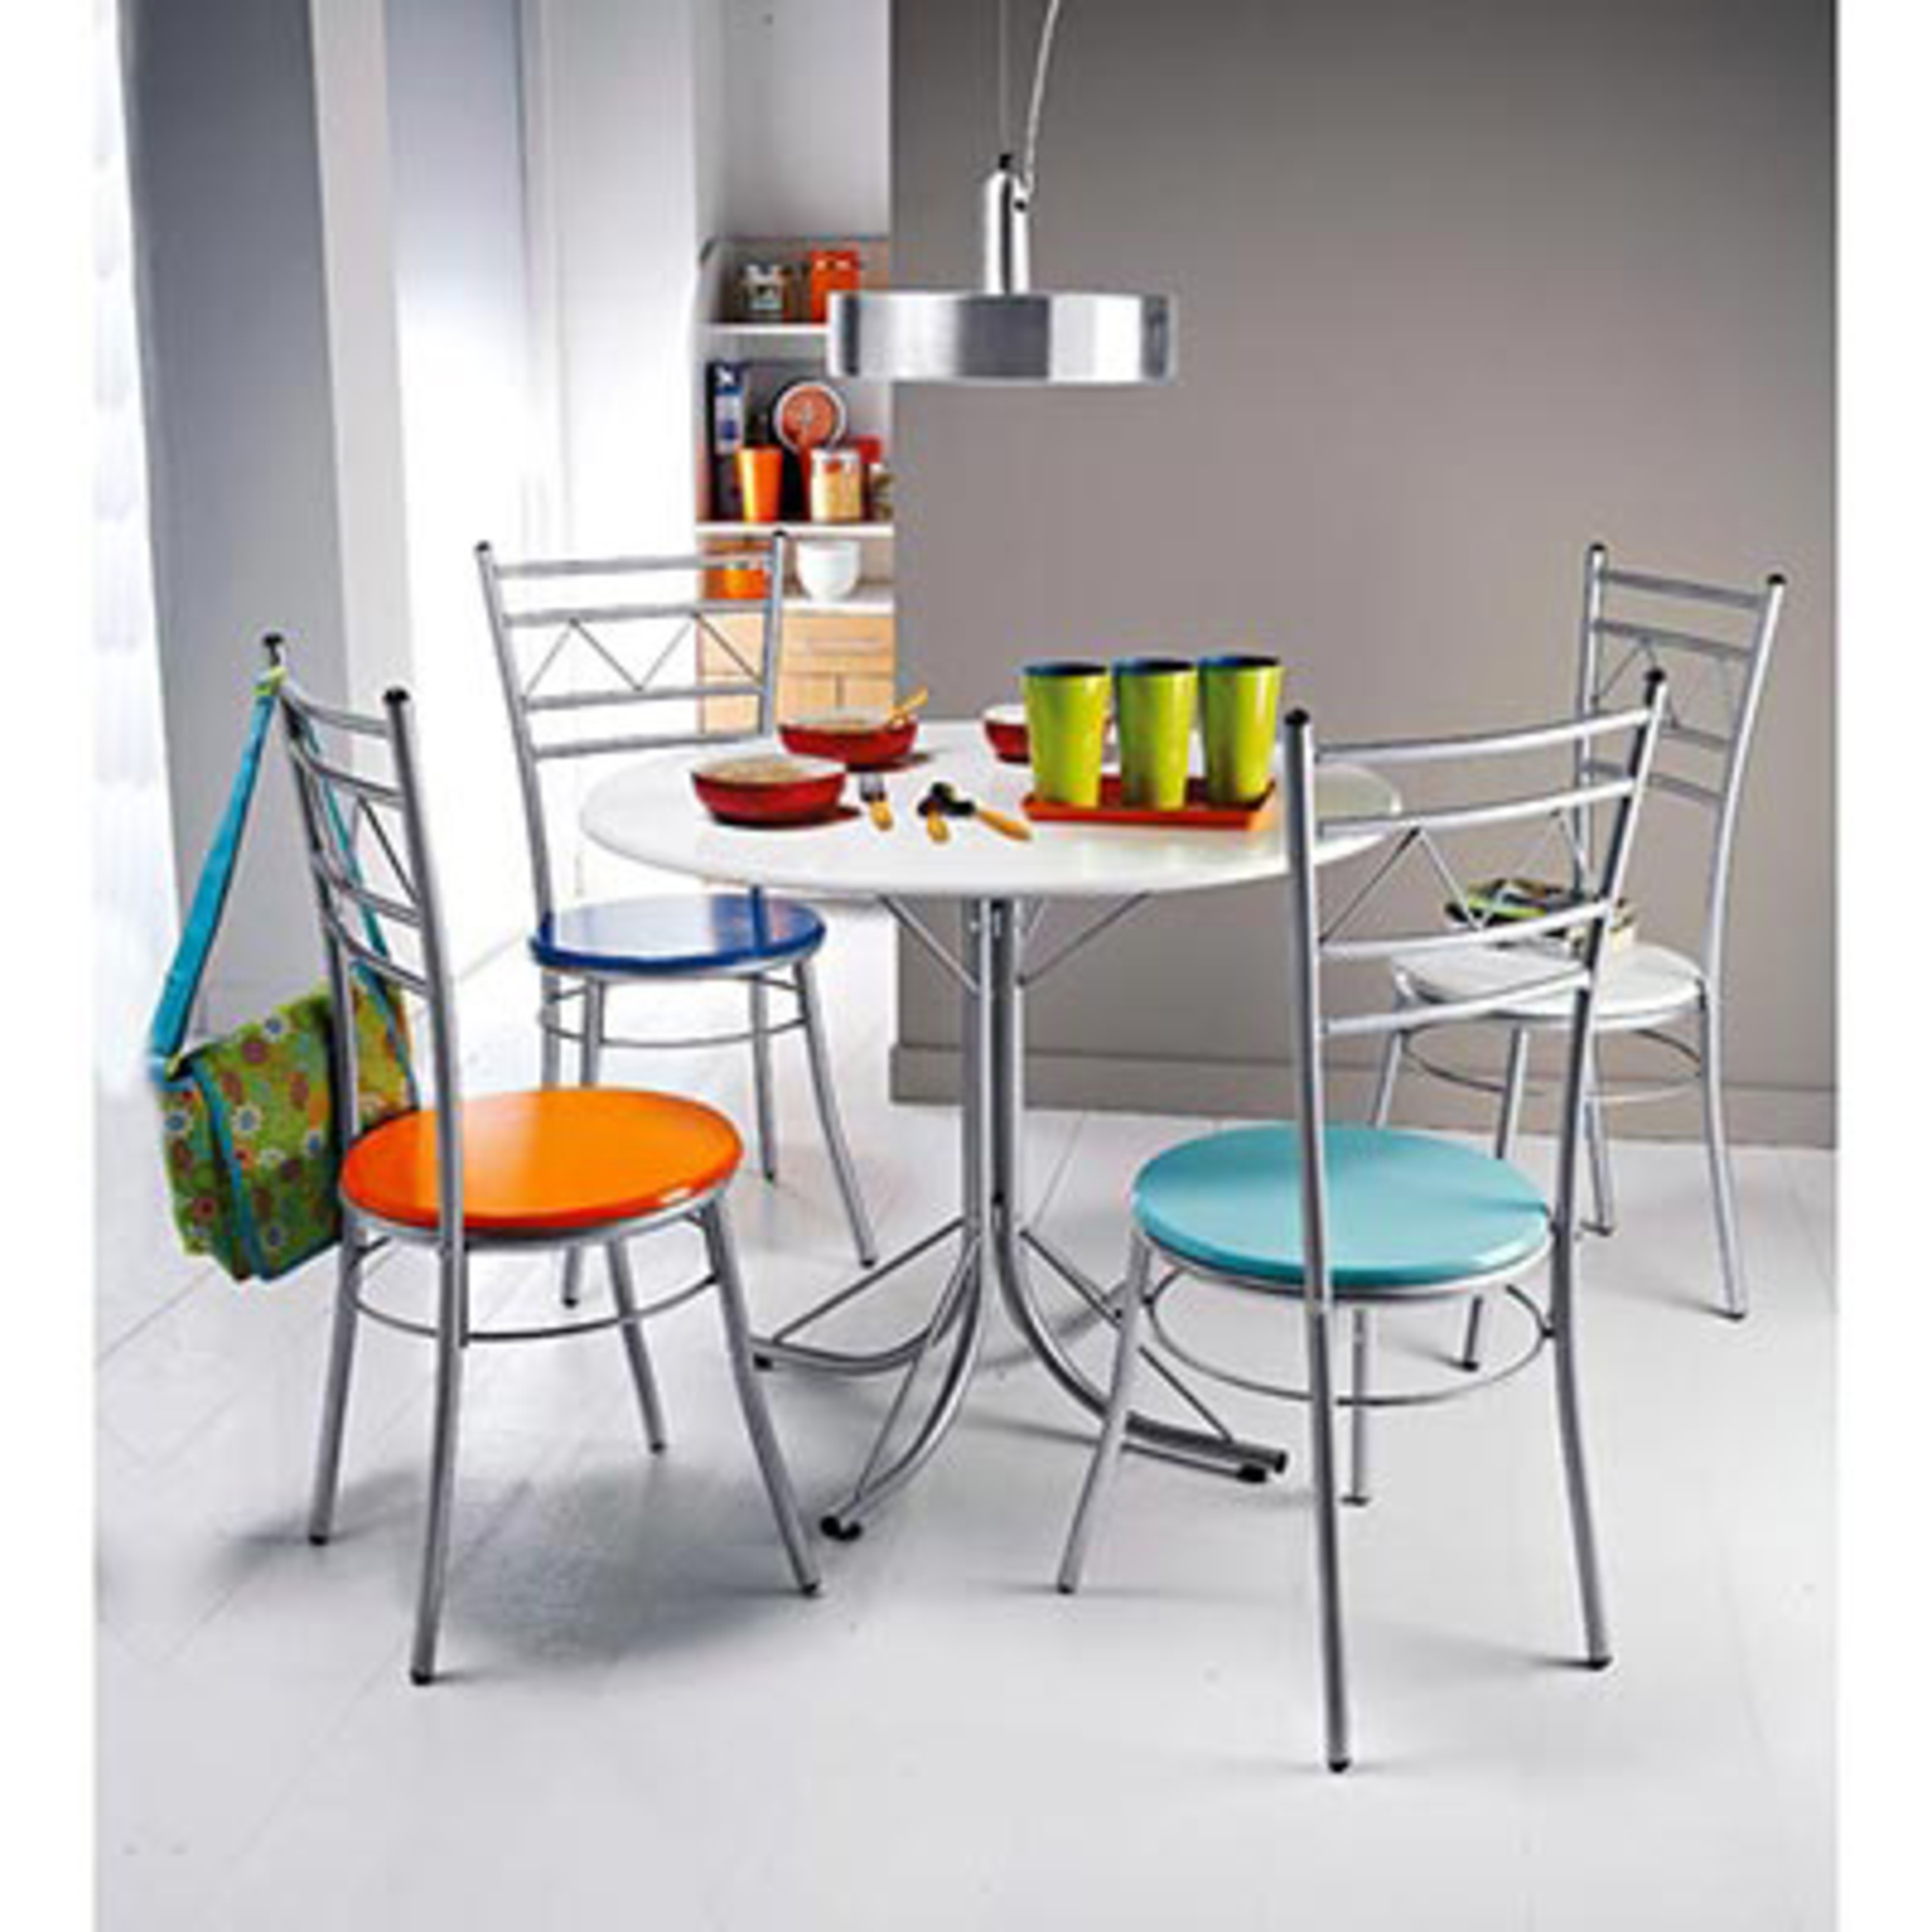 Table ronde 4 chaises cocktail multicolore anniversaire 40 ans achete - Table ronde 4 chaises ...